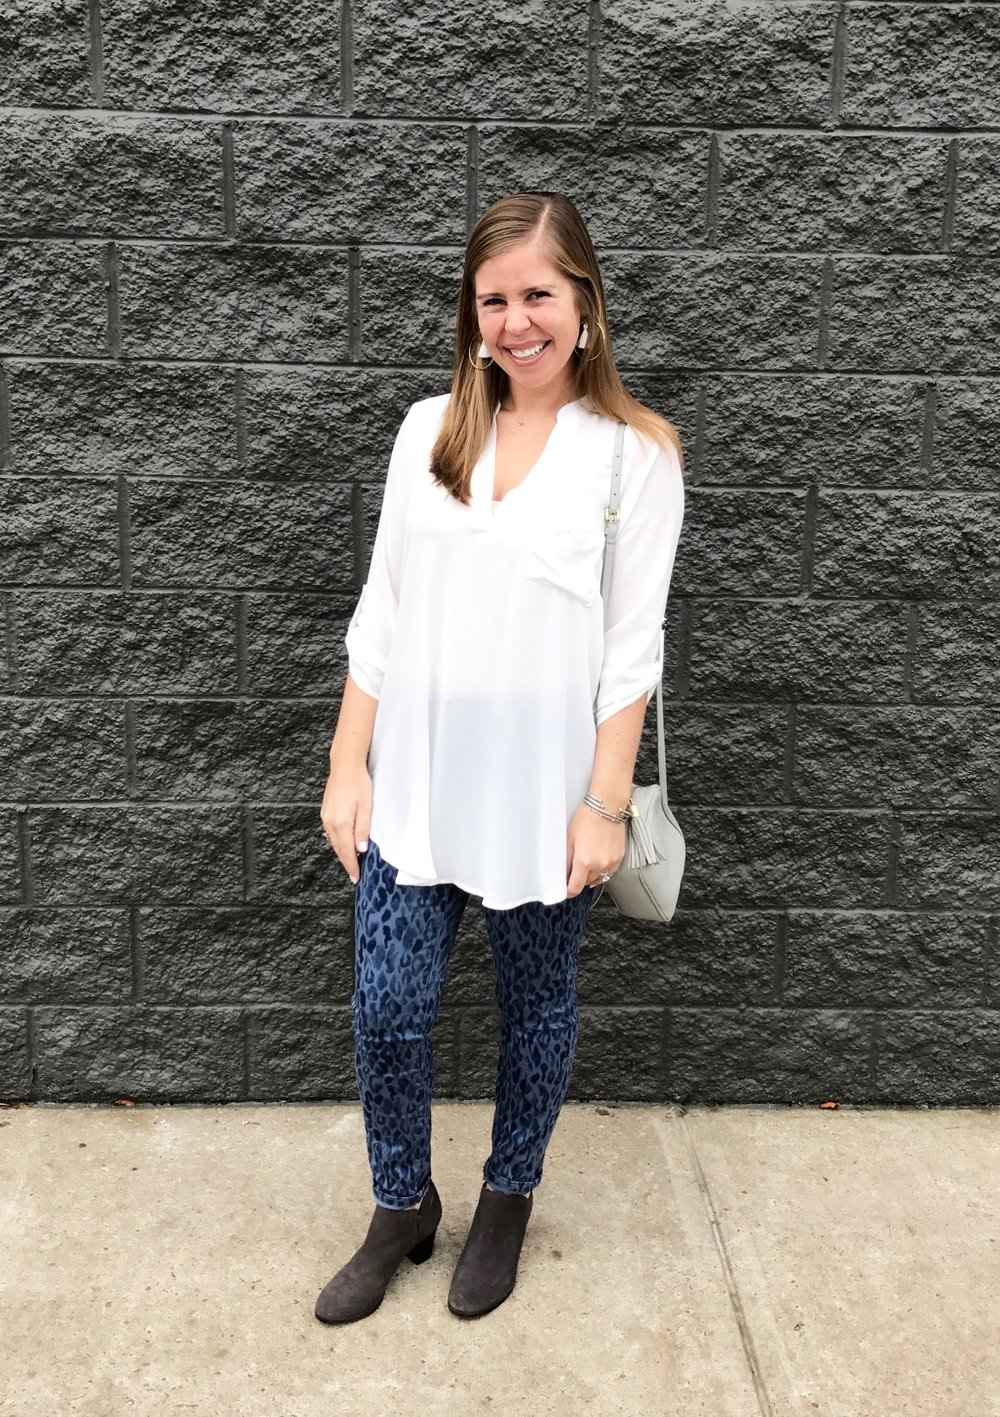 Tunic  //  Jeans  //  Booties  //  Crossbody Bag  //  Earrings